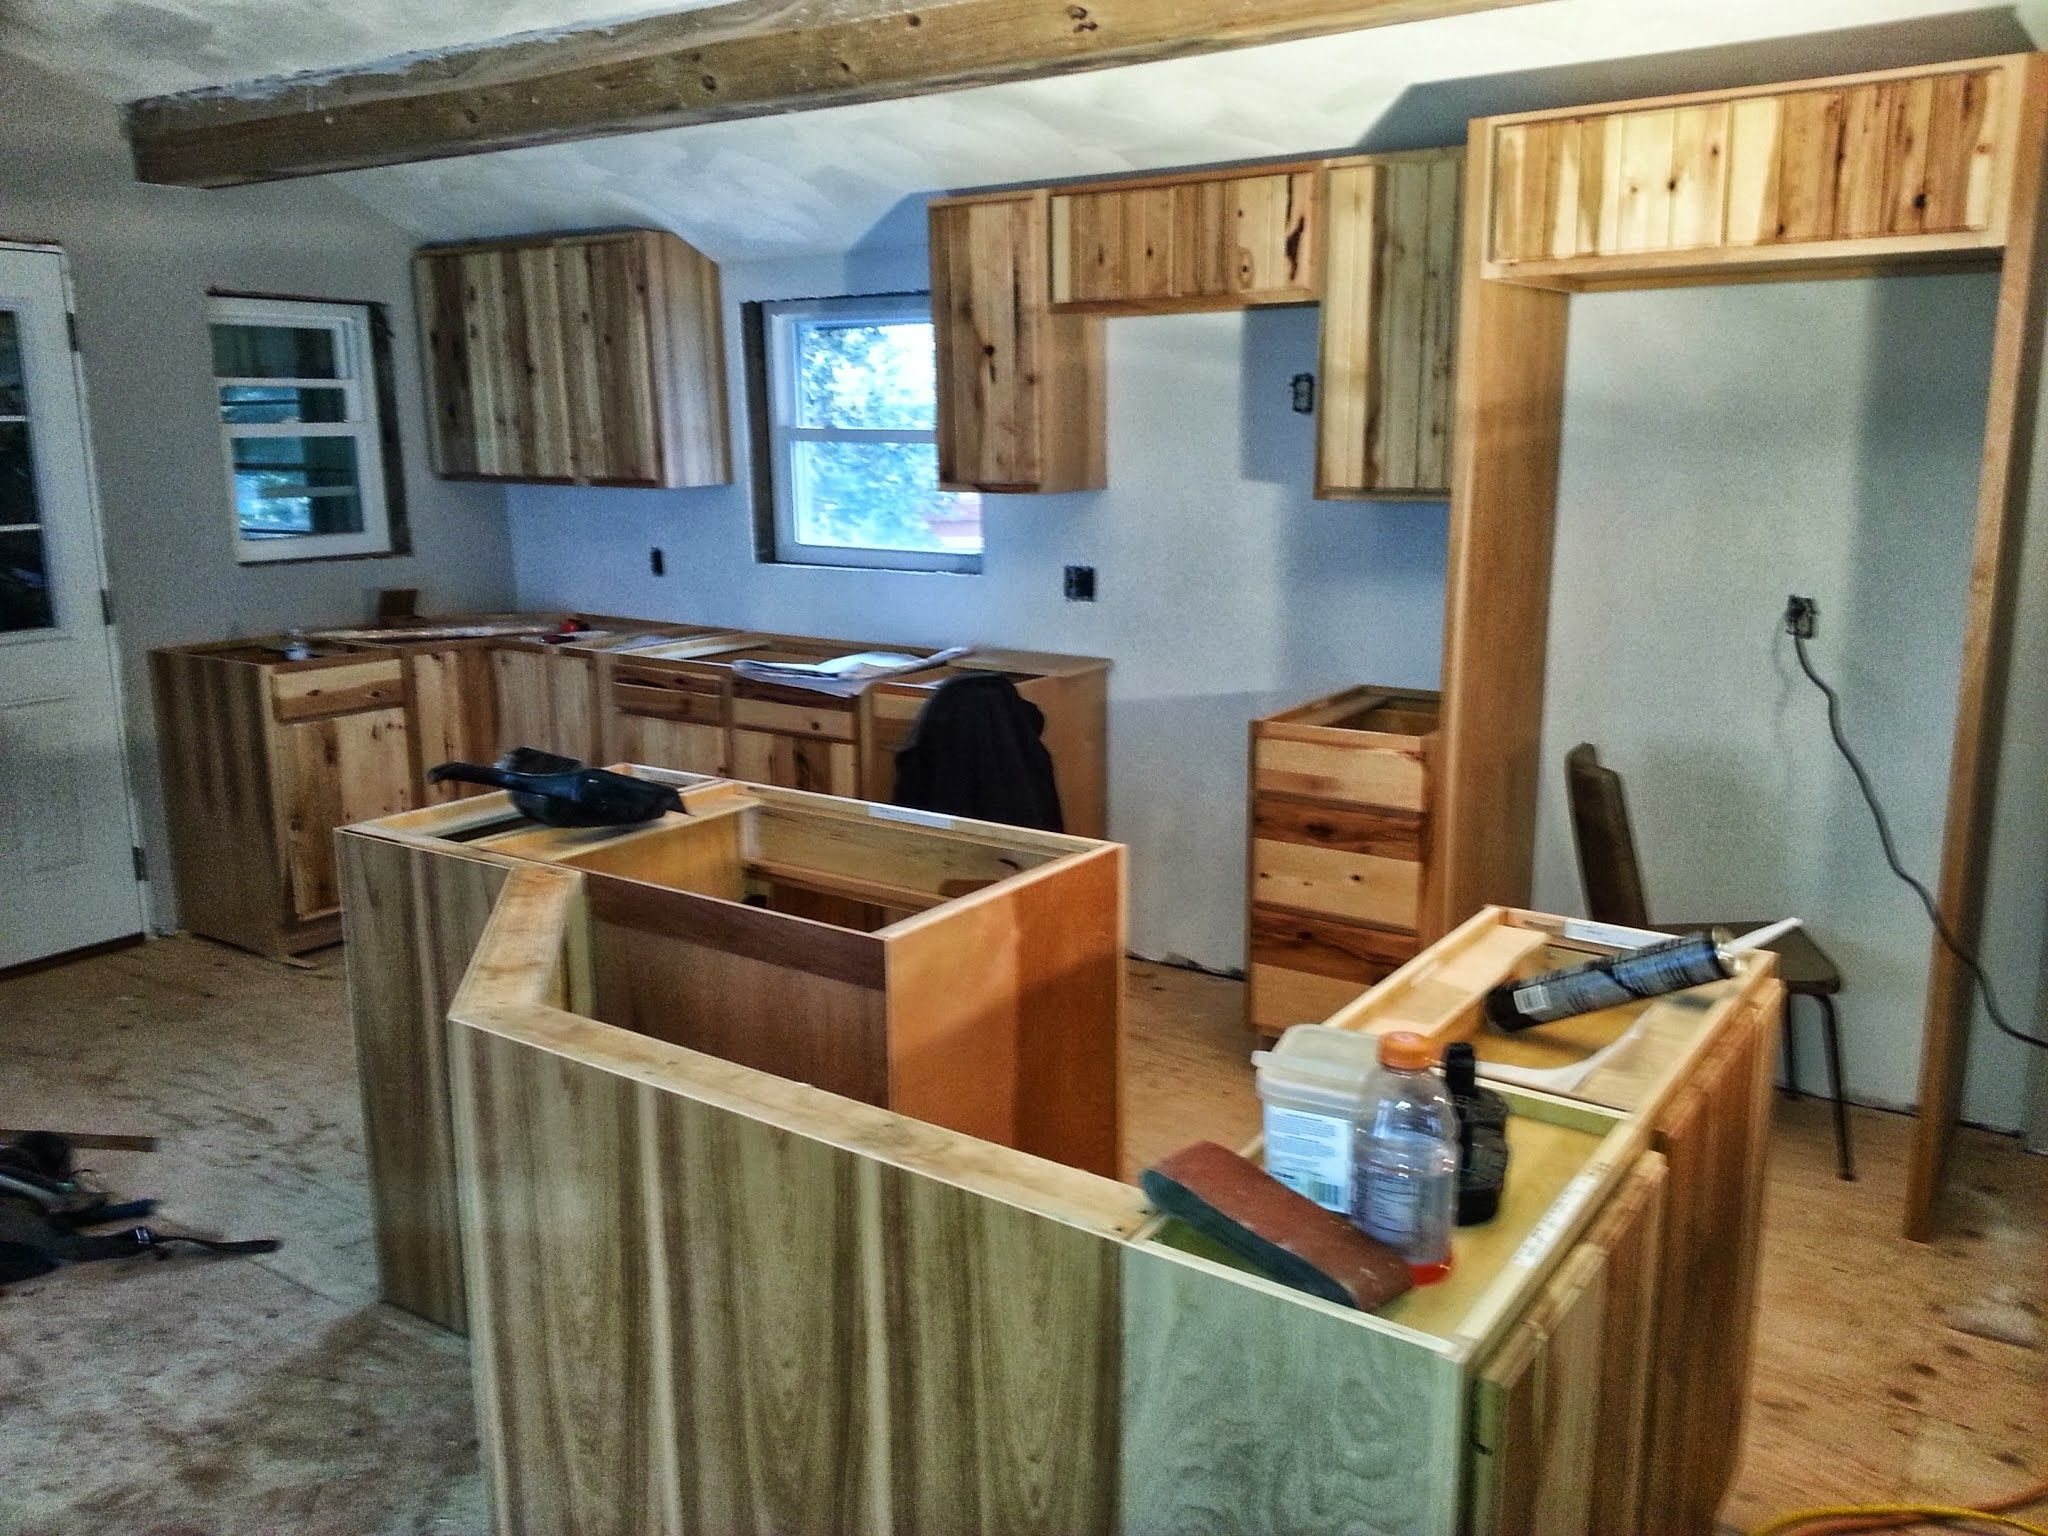 100 year old kitchen remodel in evansville - connell construction